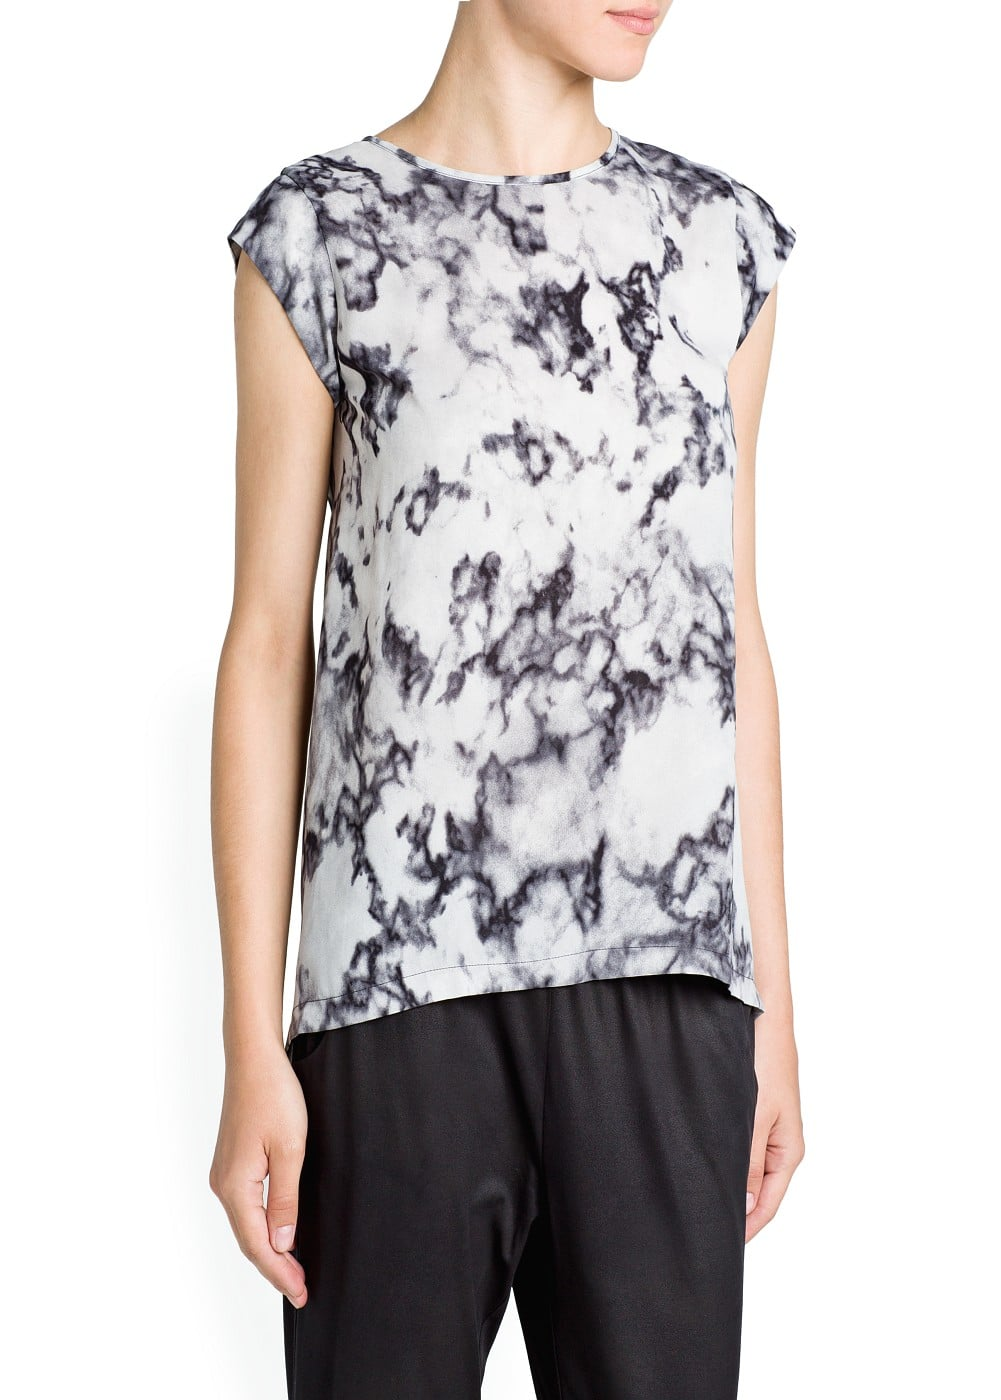 Marble print flowing t-shirt